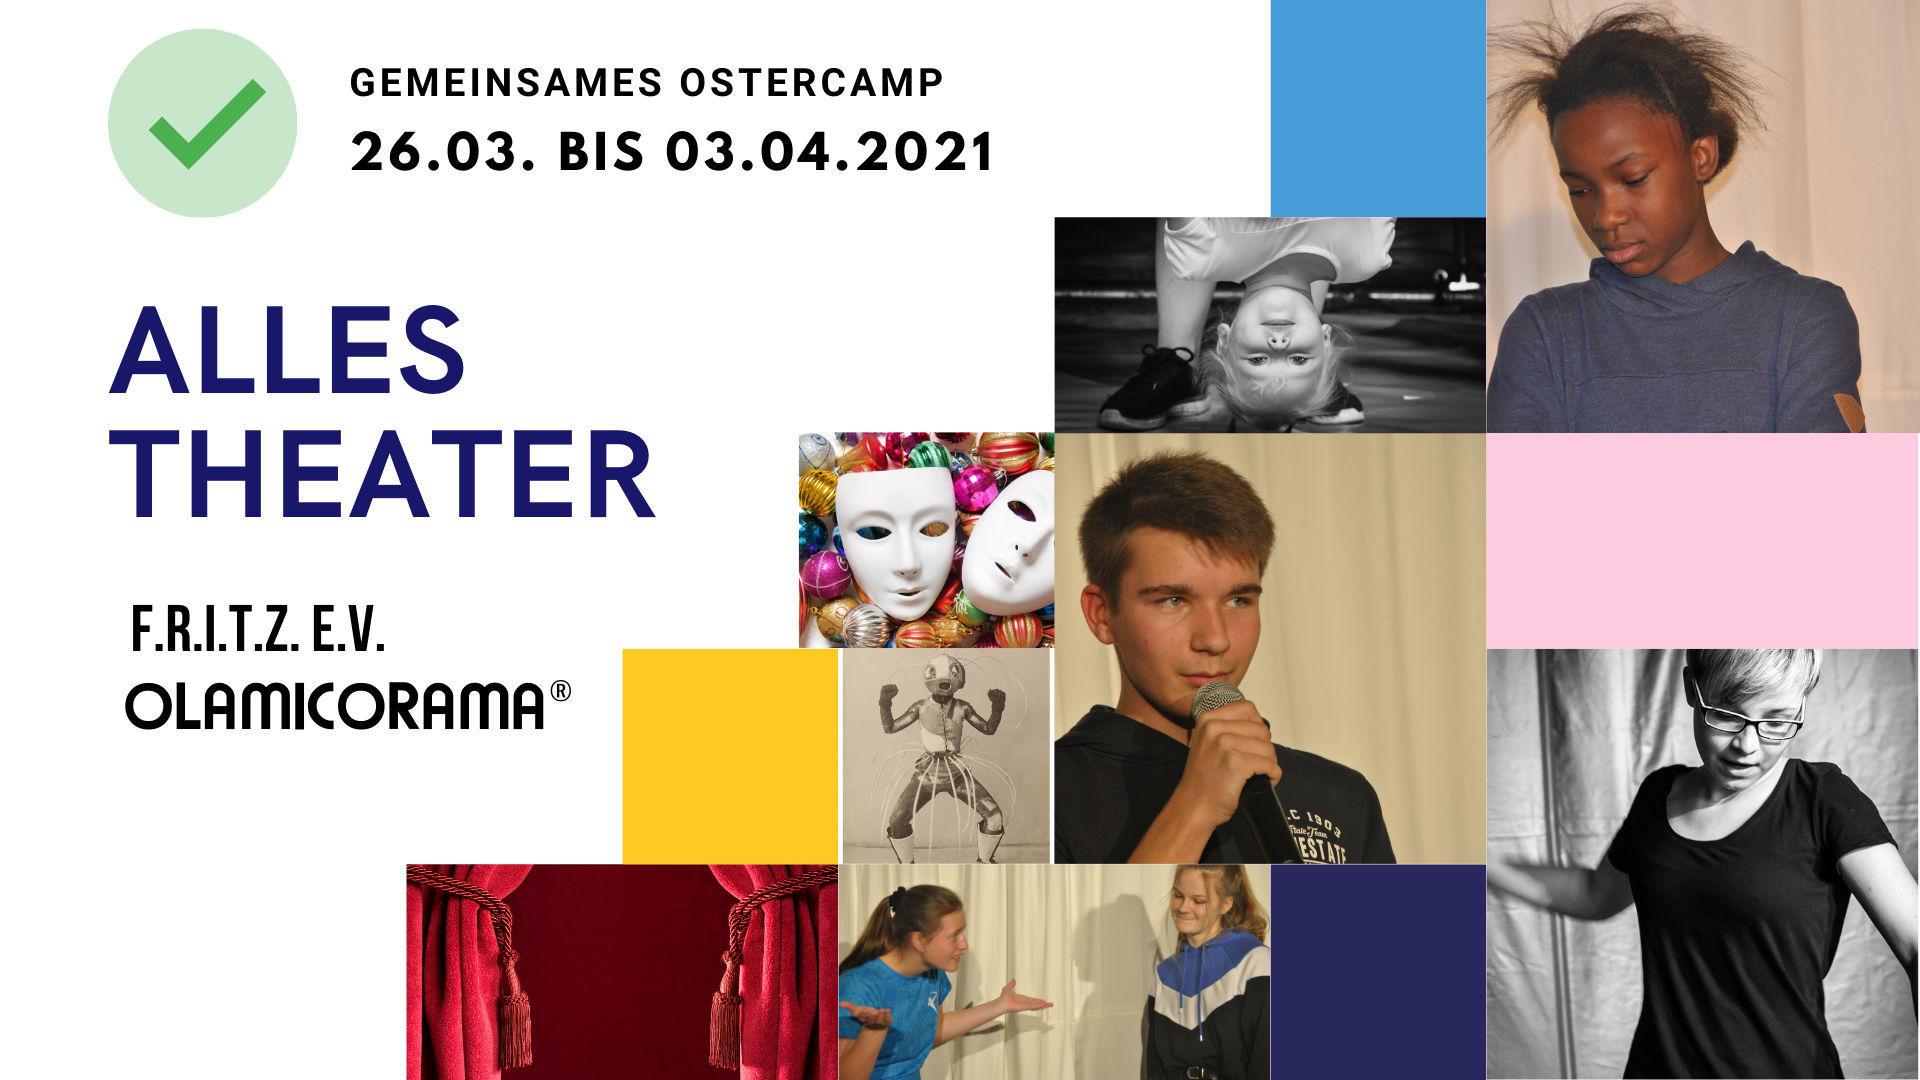 OSTERCAMP 2021 - ALLES THEATER